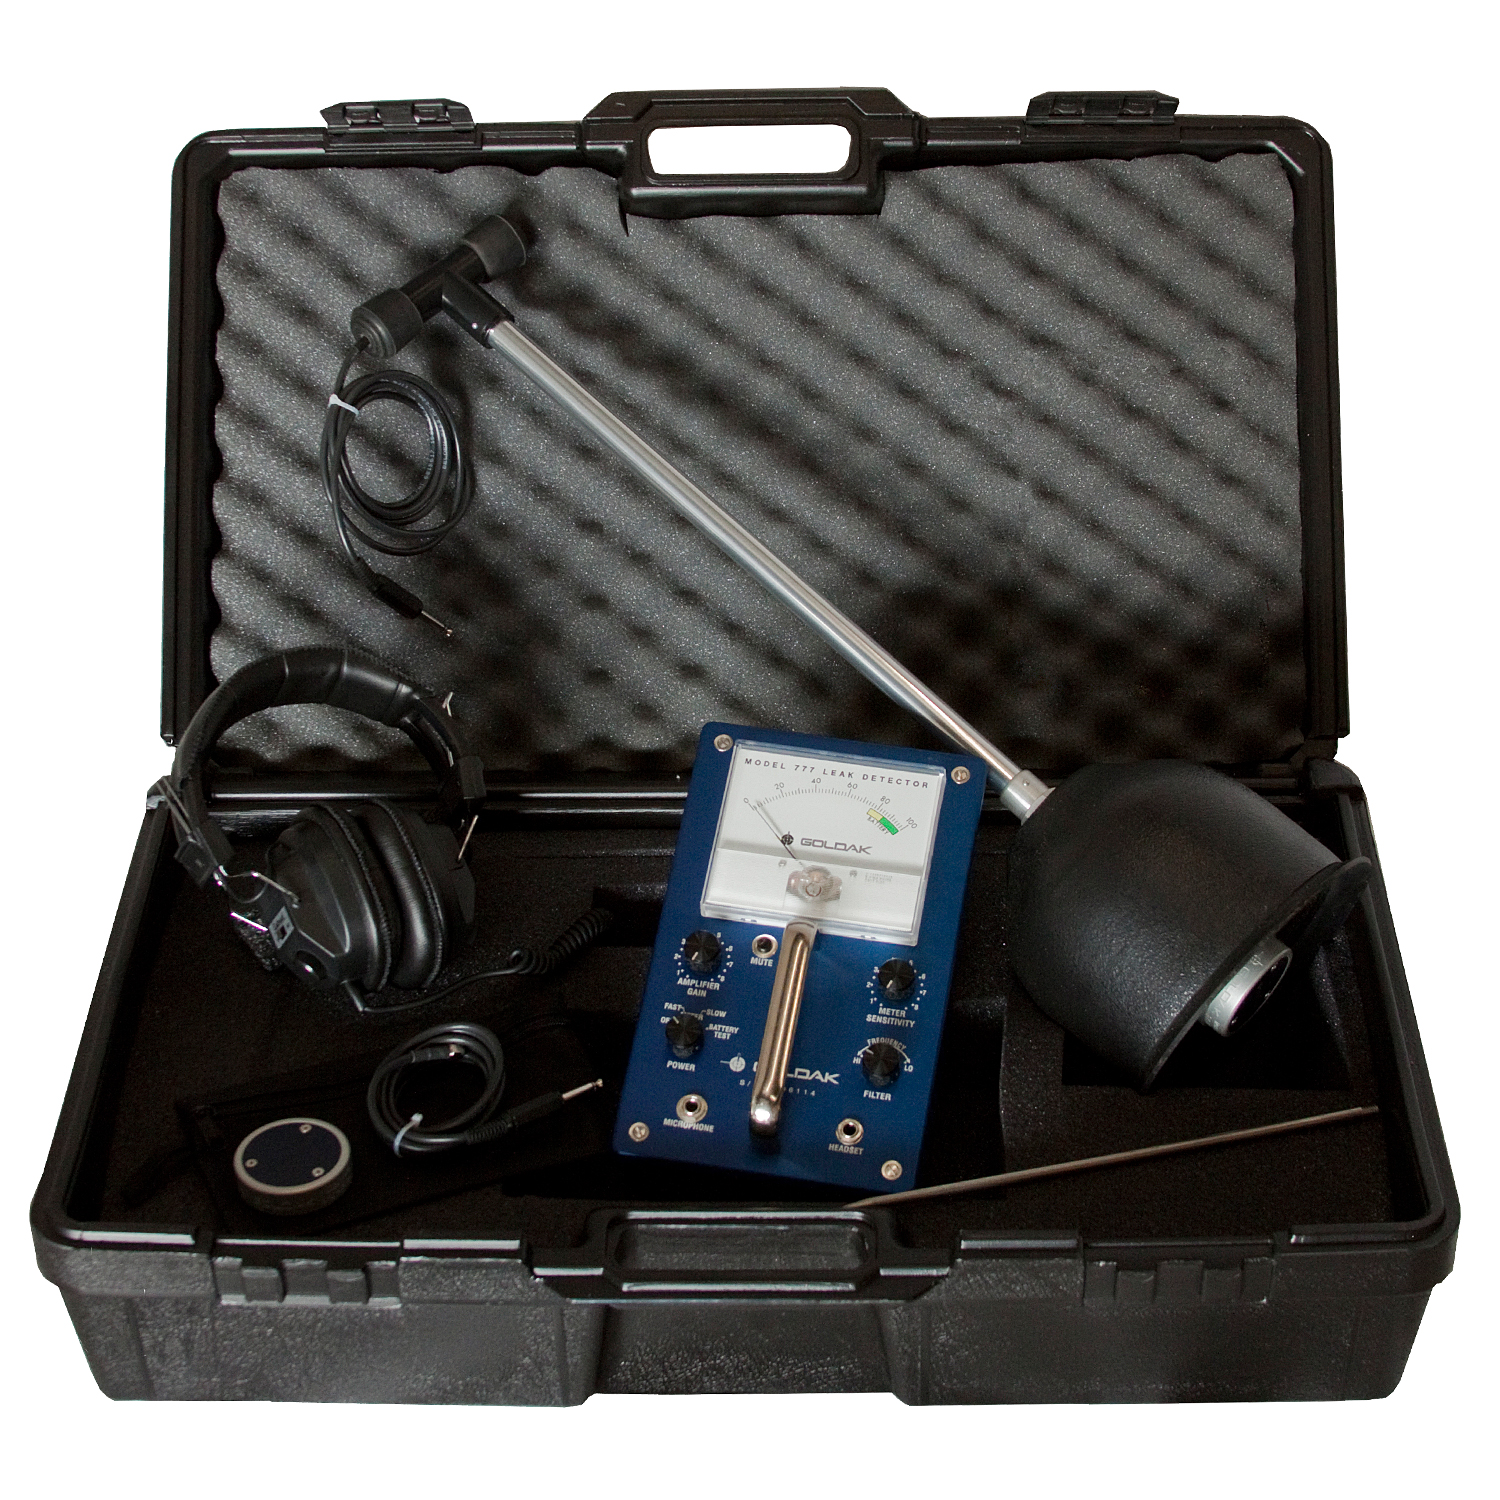 Plumbing Electronic Sound Tests Equipment